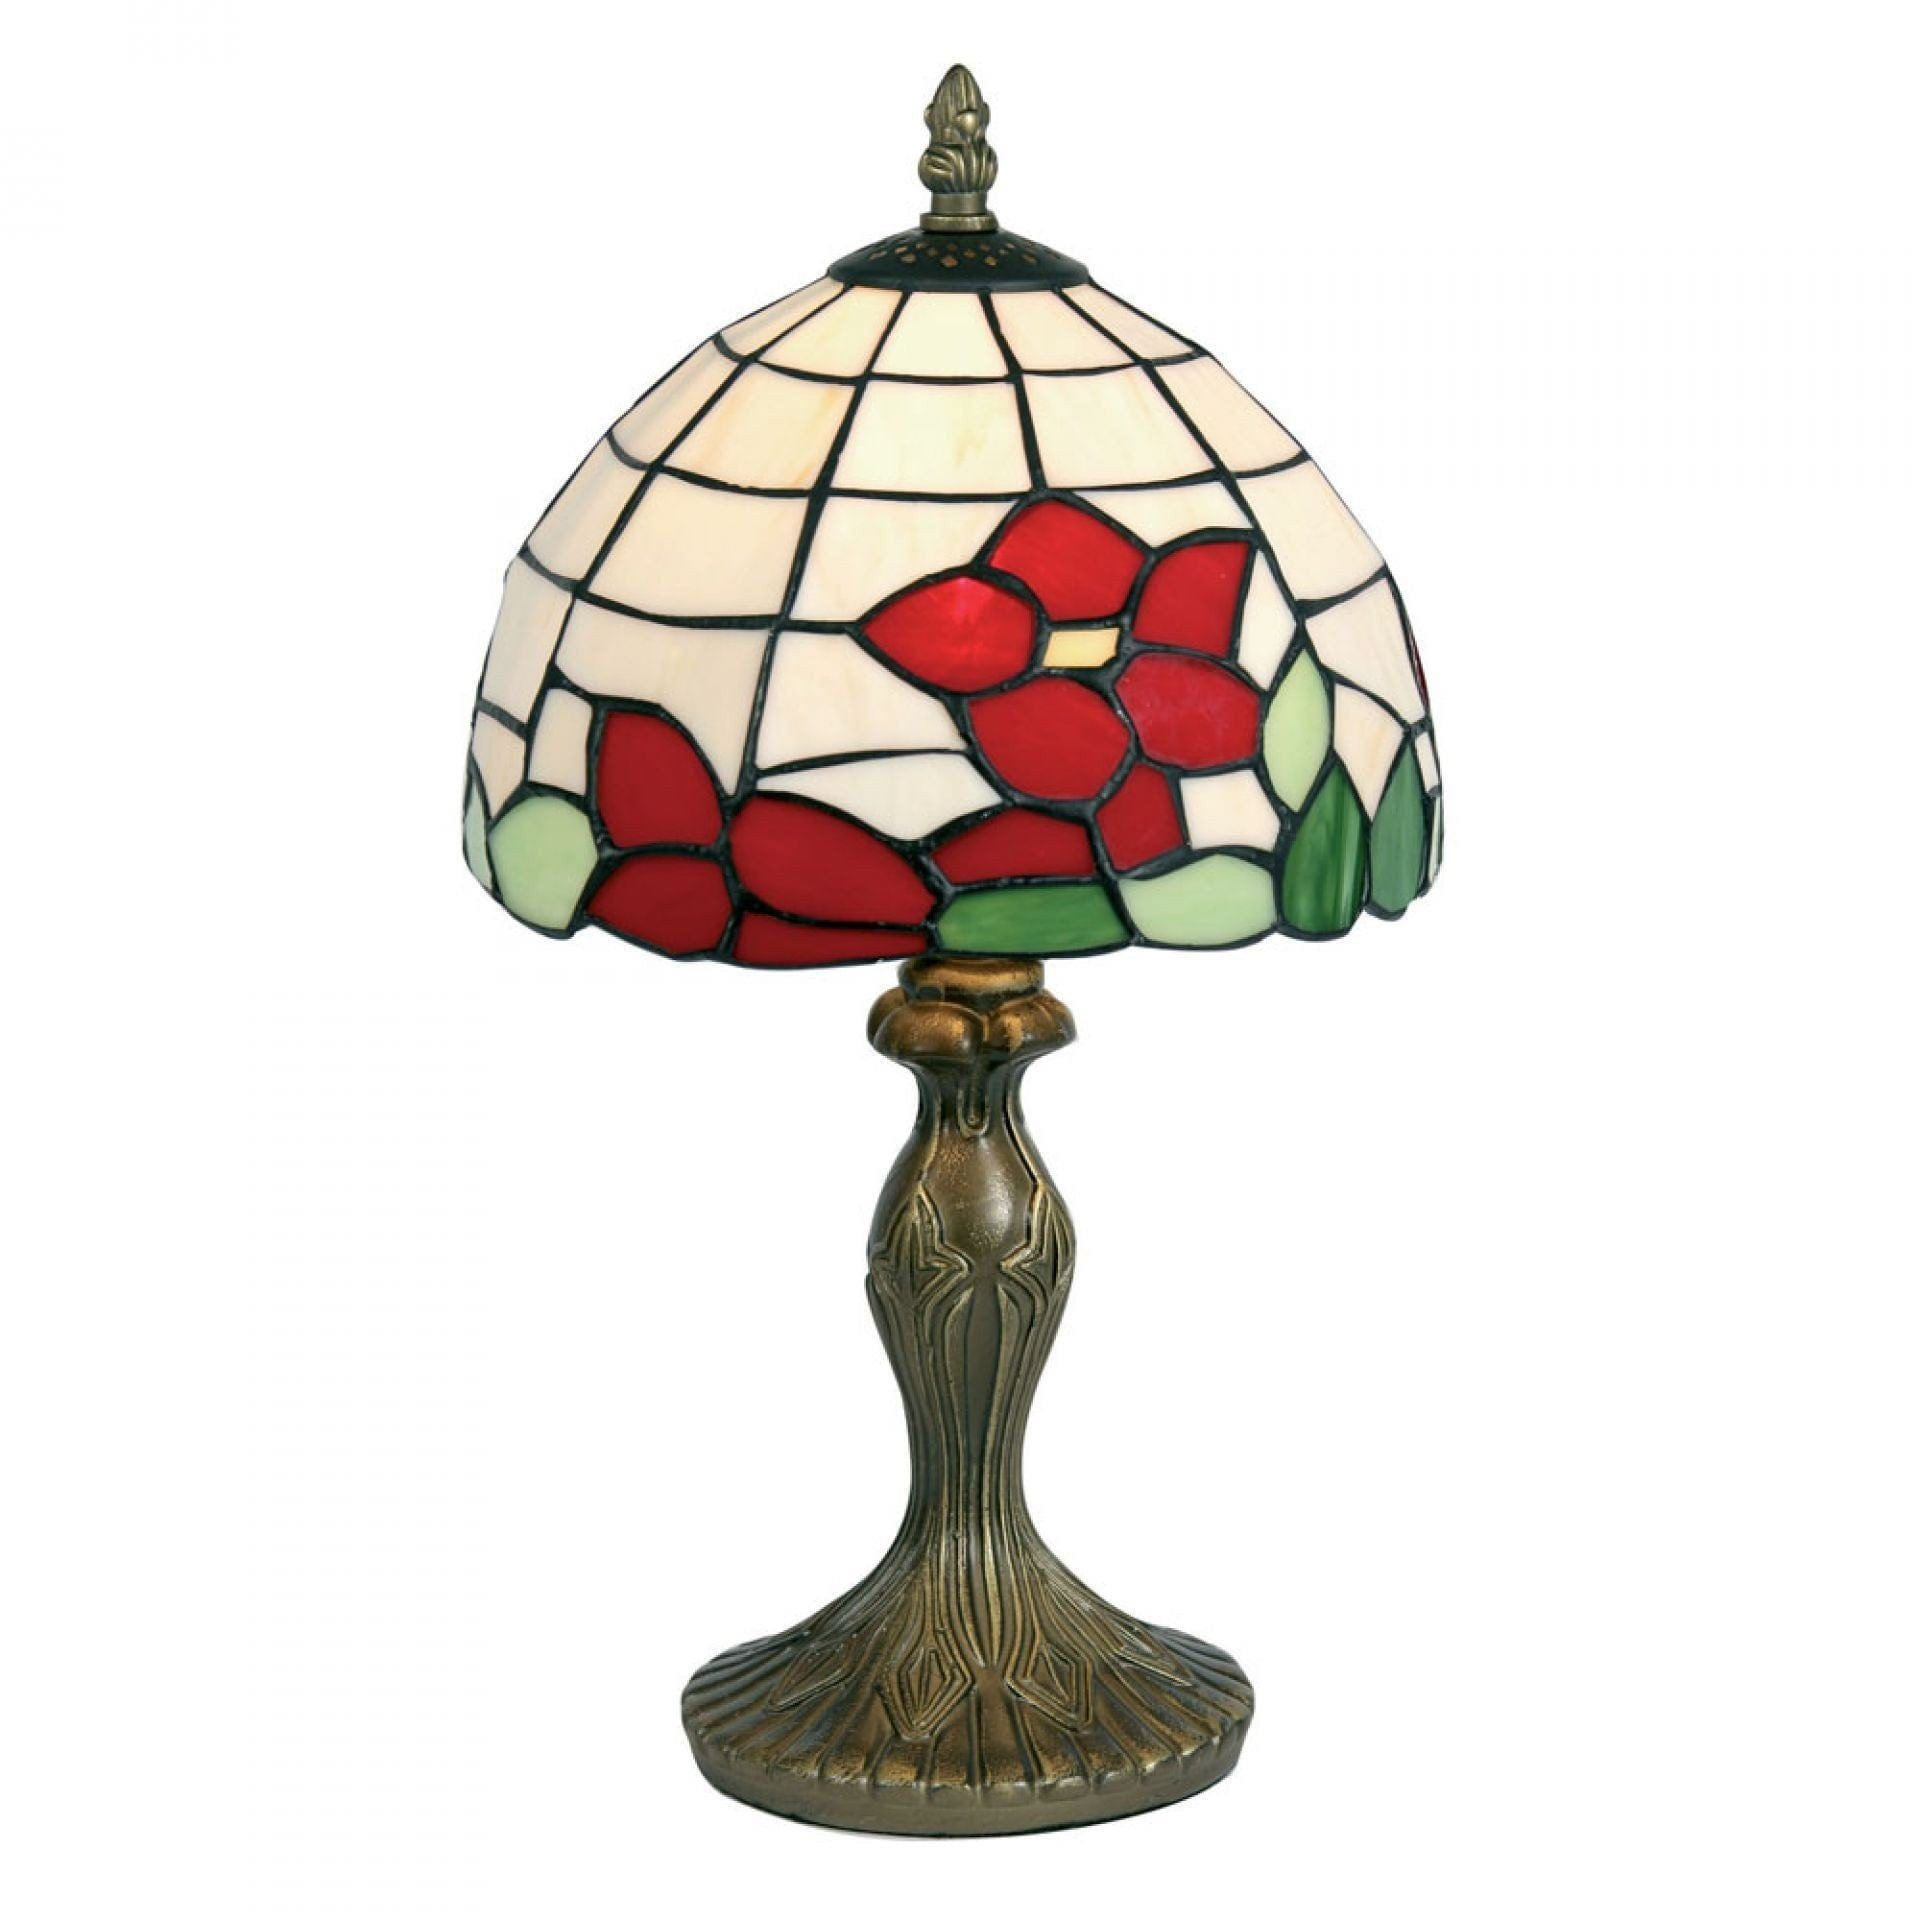 Tiffany Bedside Lamps - Oaks Tiffany Red Flower Bedside Lamp OT 60 RF